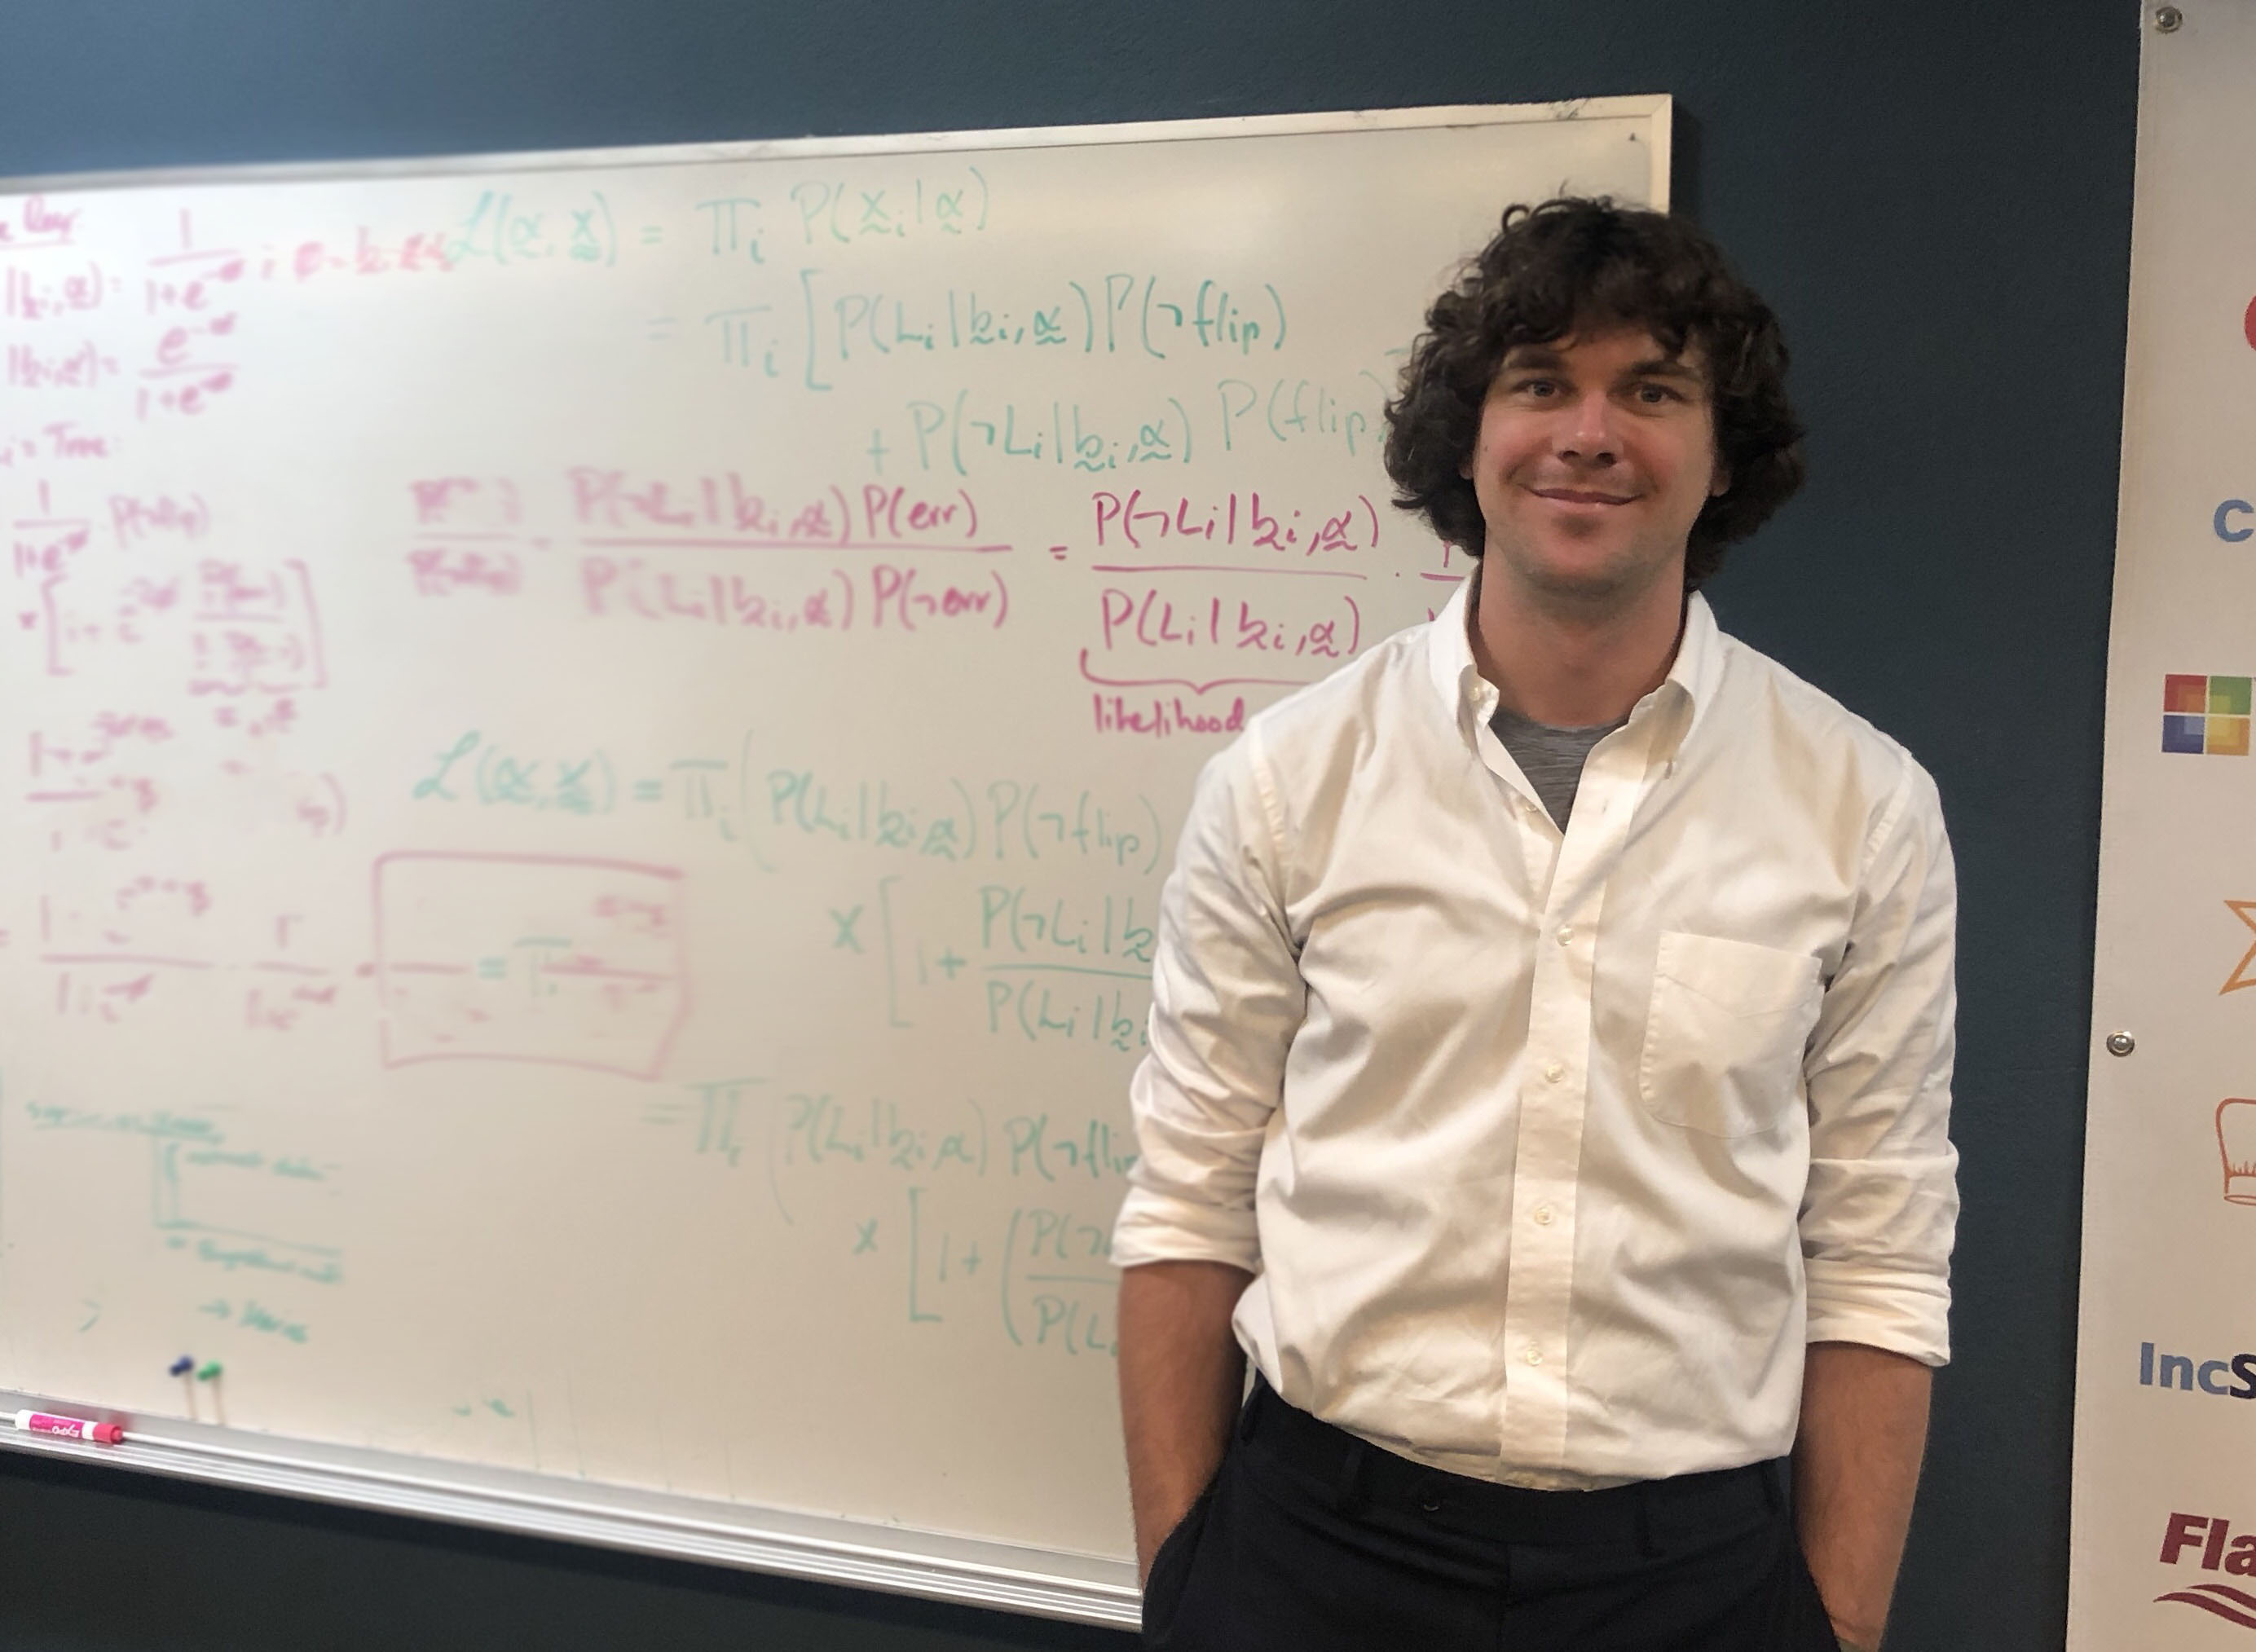 Employee Spotlight: Mike McCourt, Astrophysicist Turned Data Scientist